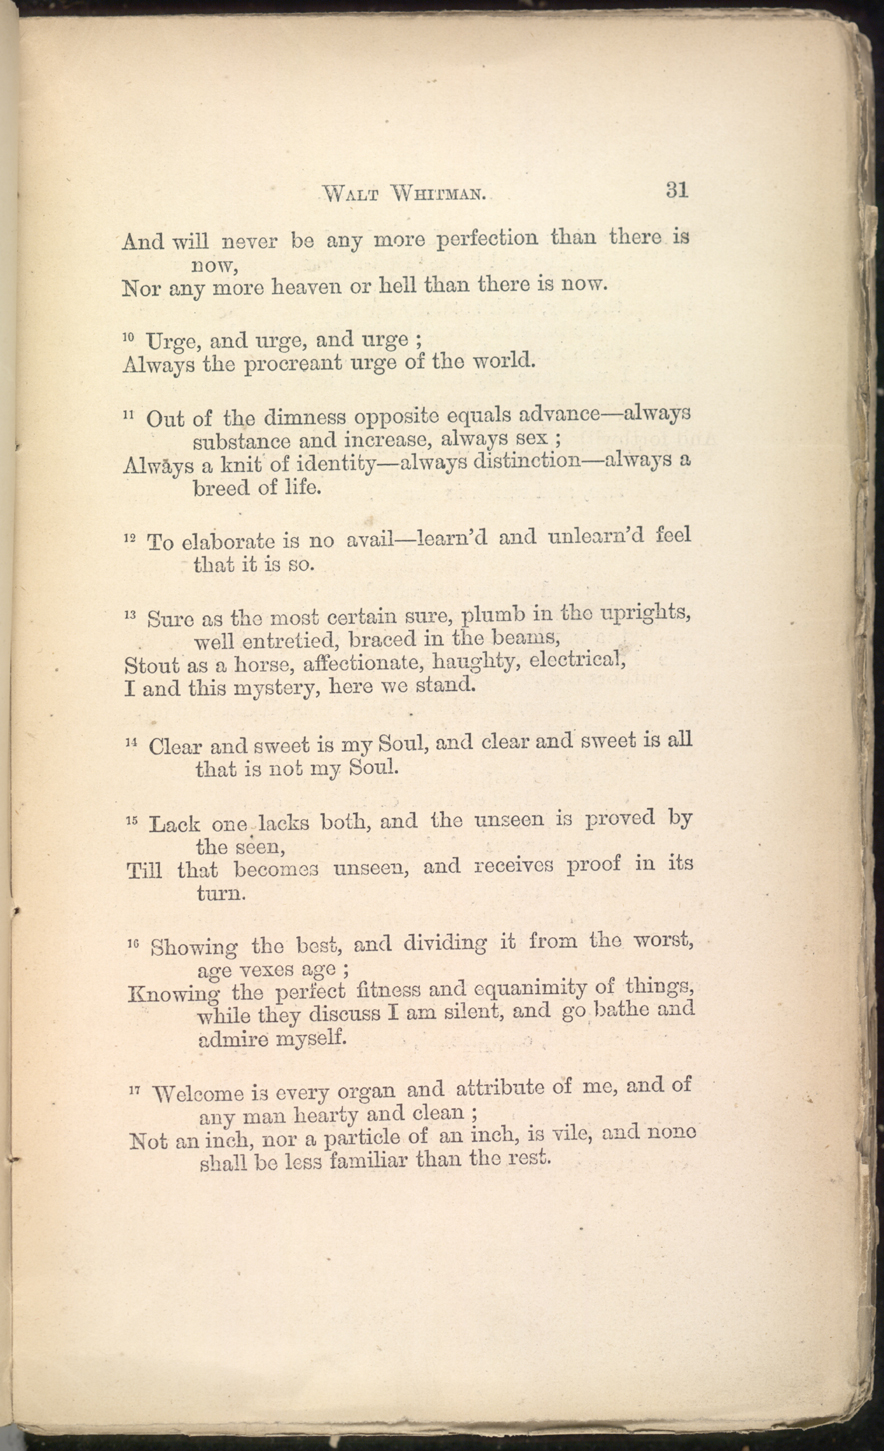 1871-72 Leaves of Grass, page 31